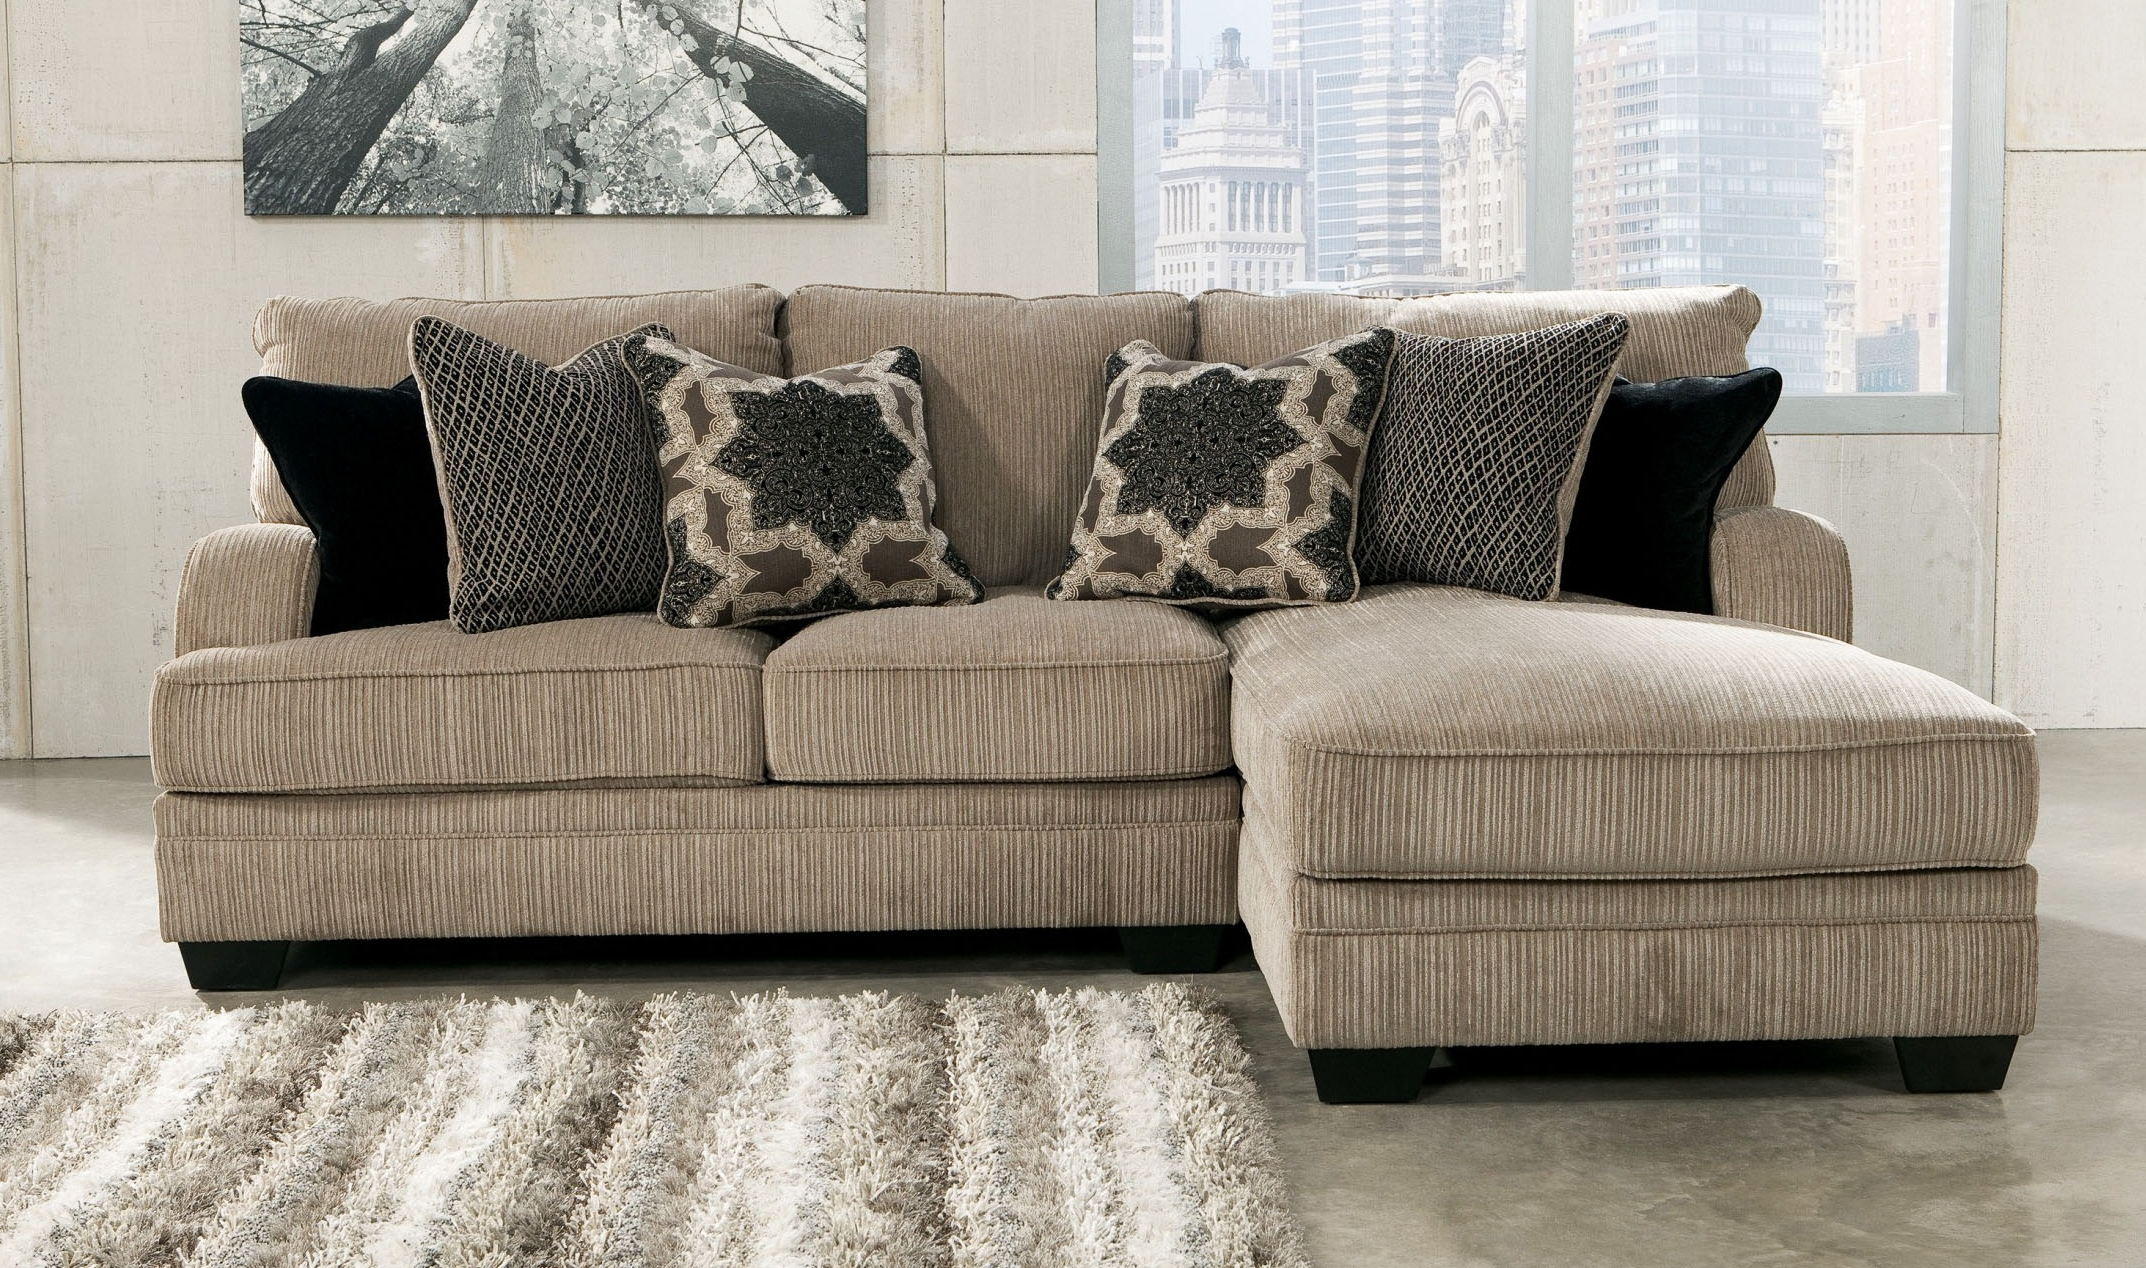 Widely Used Small Sectional Sofas With Chaise And Ottoman Within Luxury Small Sectional Sofa With Chaise Lounge 79 For Stickley (View 20 of 20)